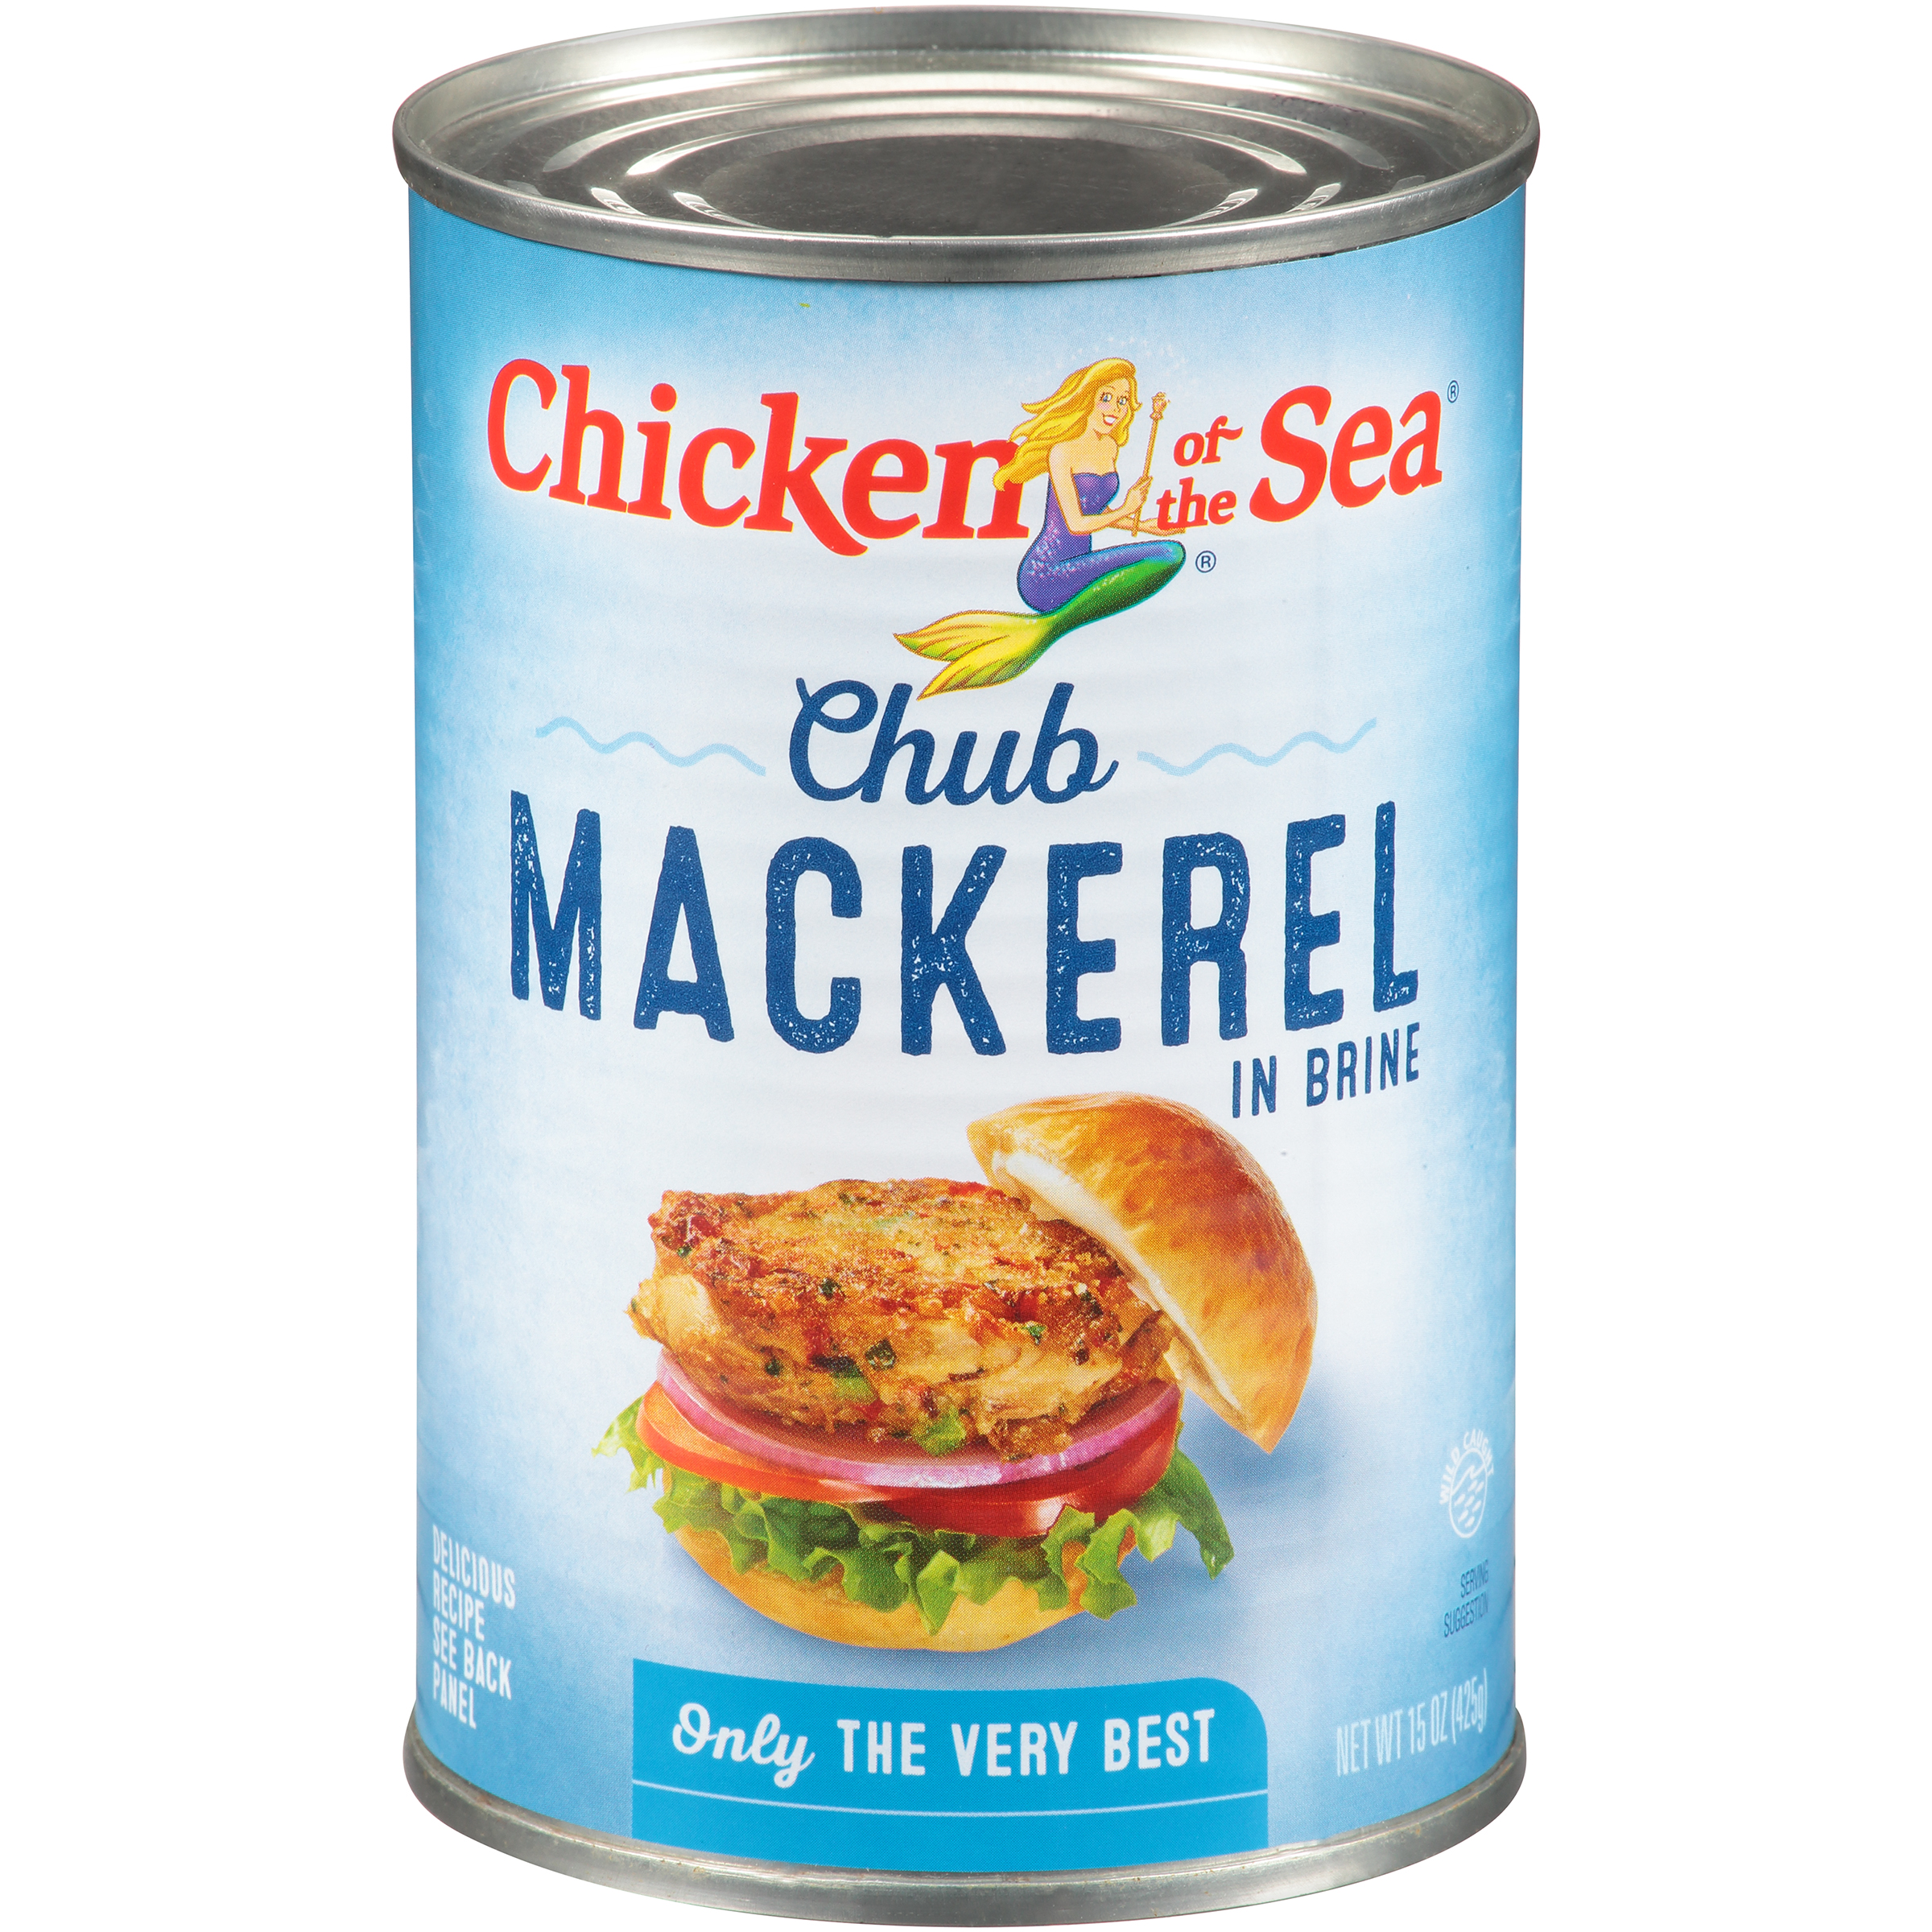 Chicken of the Sea Chub Mackerel 15 oz. Can by Chicken of The Sea International